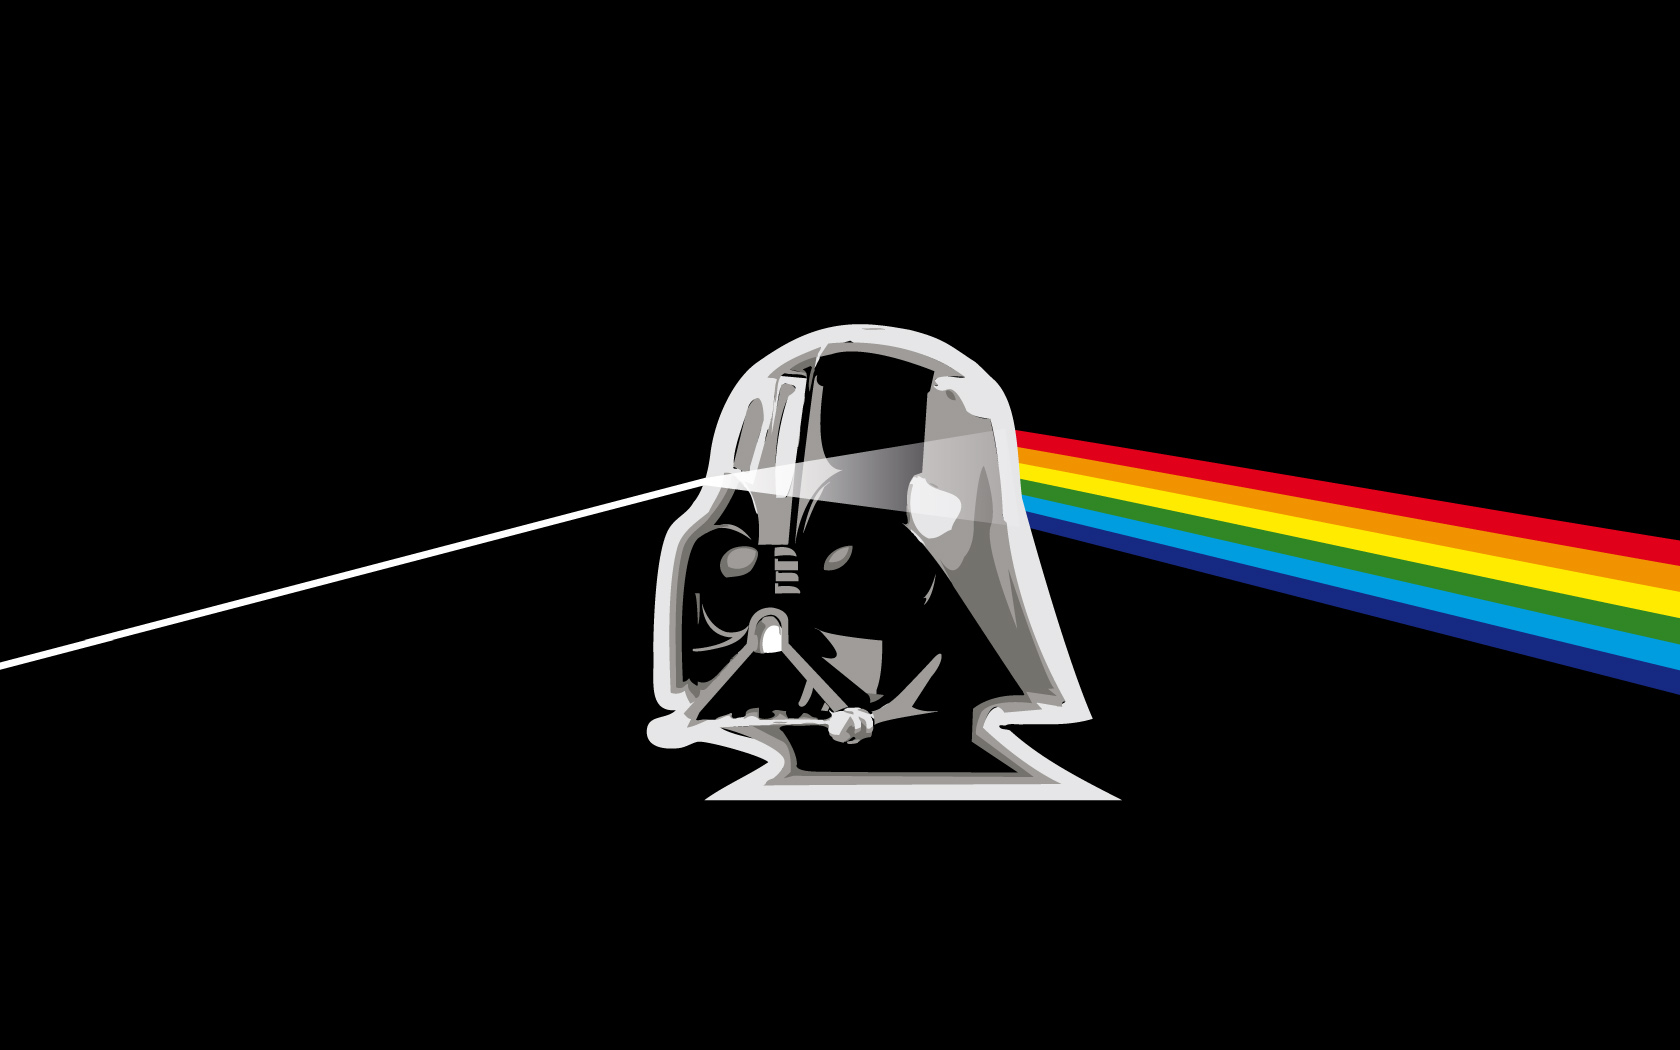 Pink Floyd Wallpaper And Screensaver For Computer cute Wallpapers 1680x1050